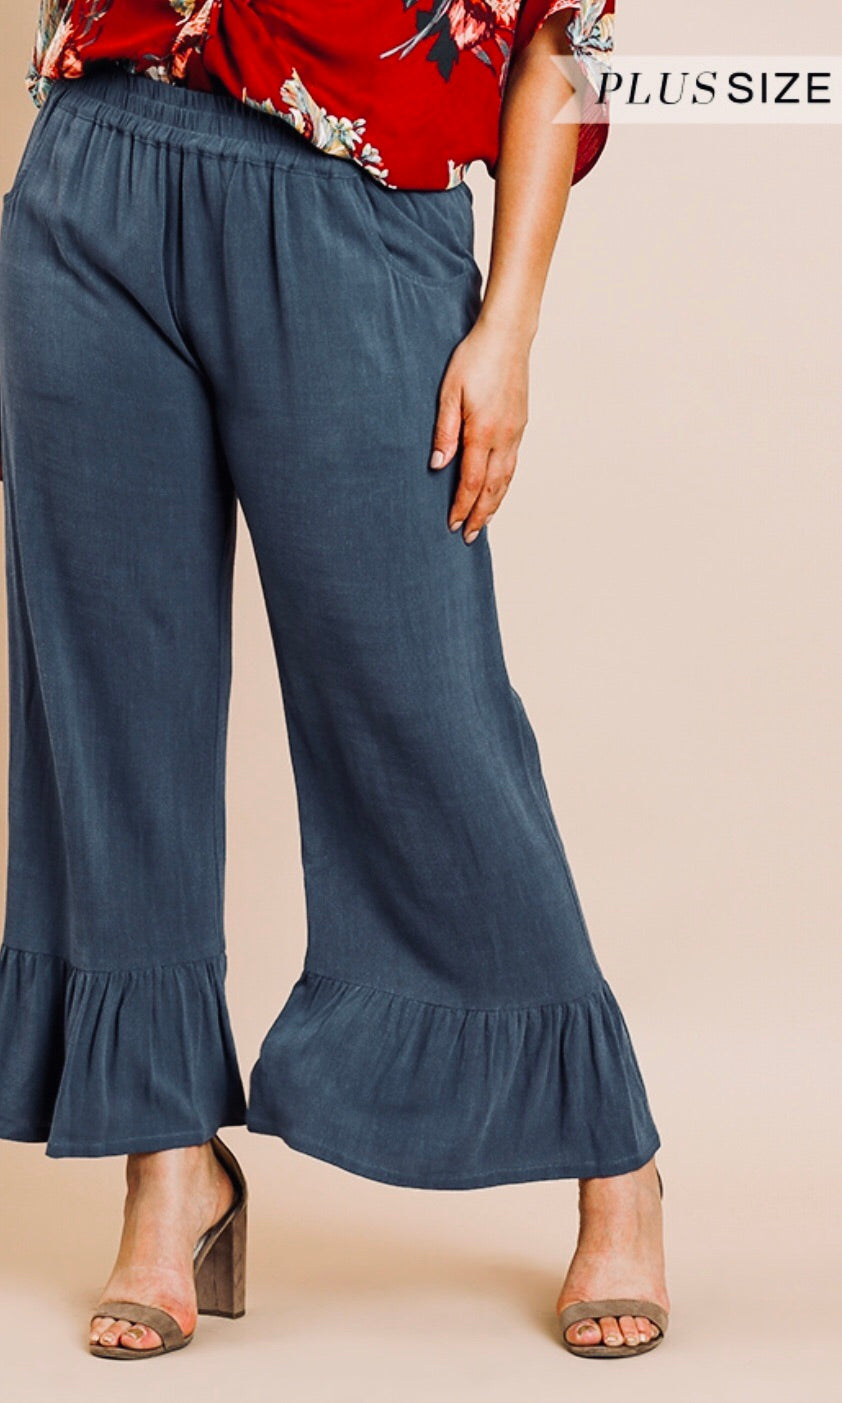 The Indigo Pant in Plus